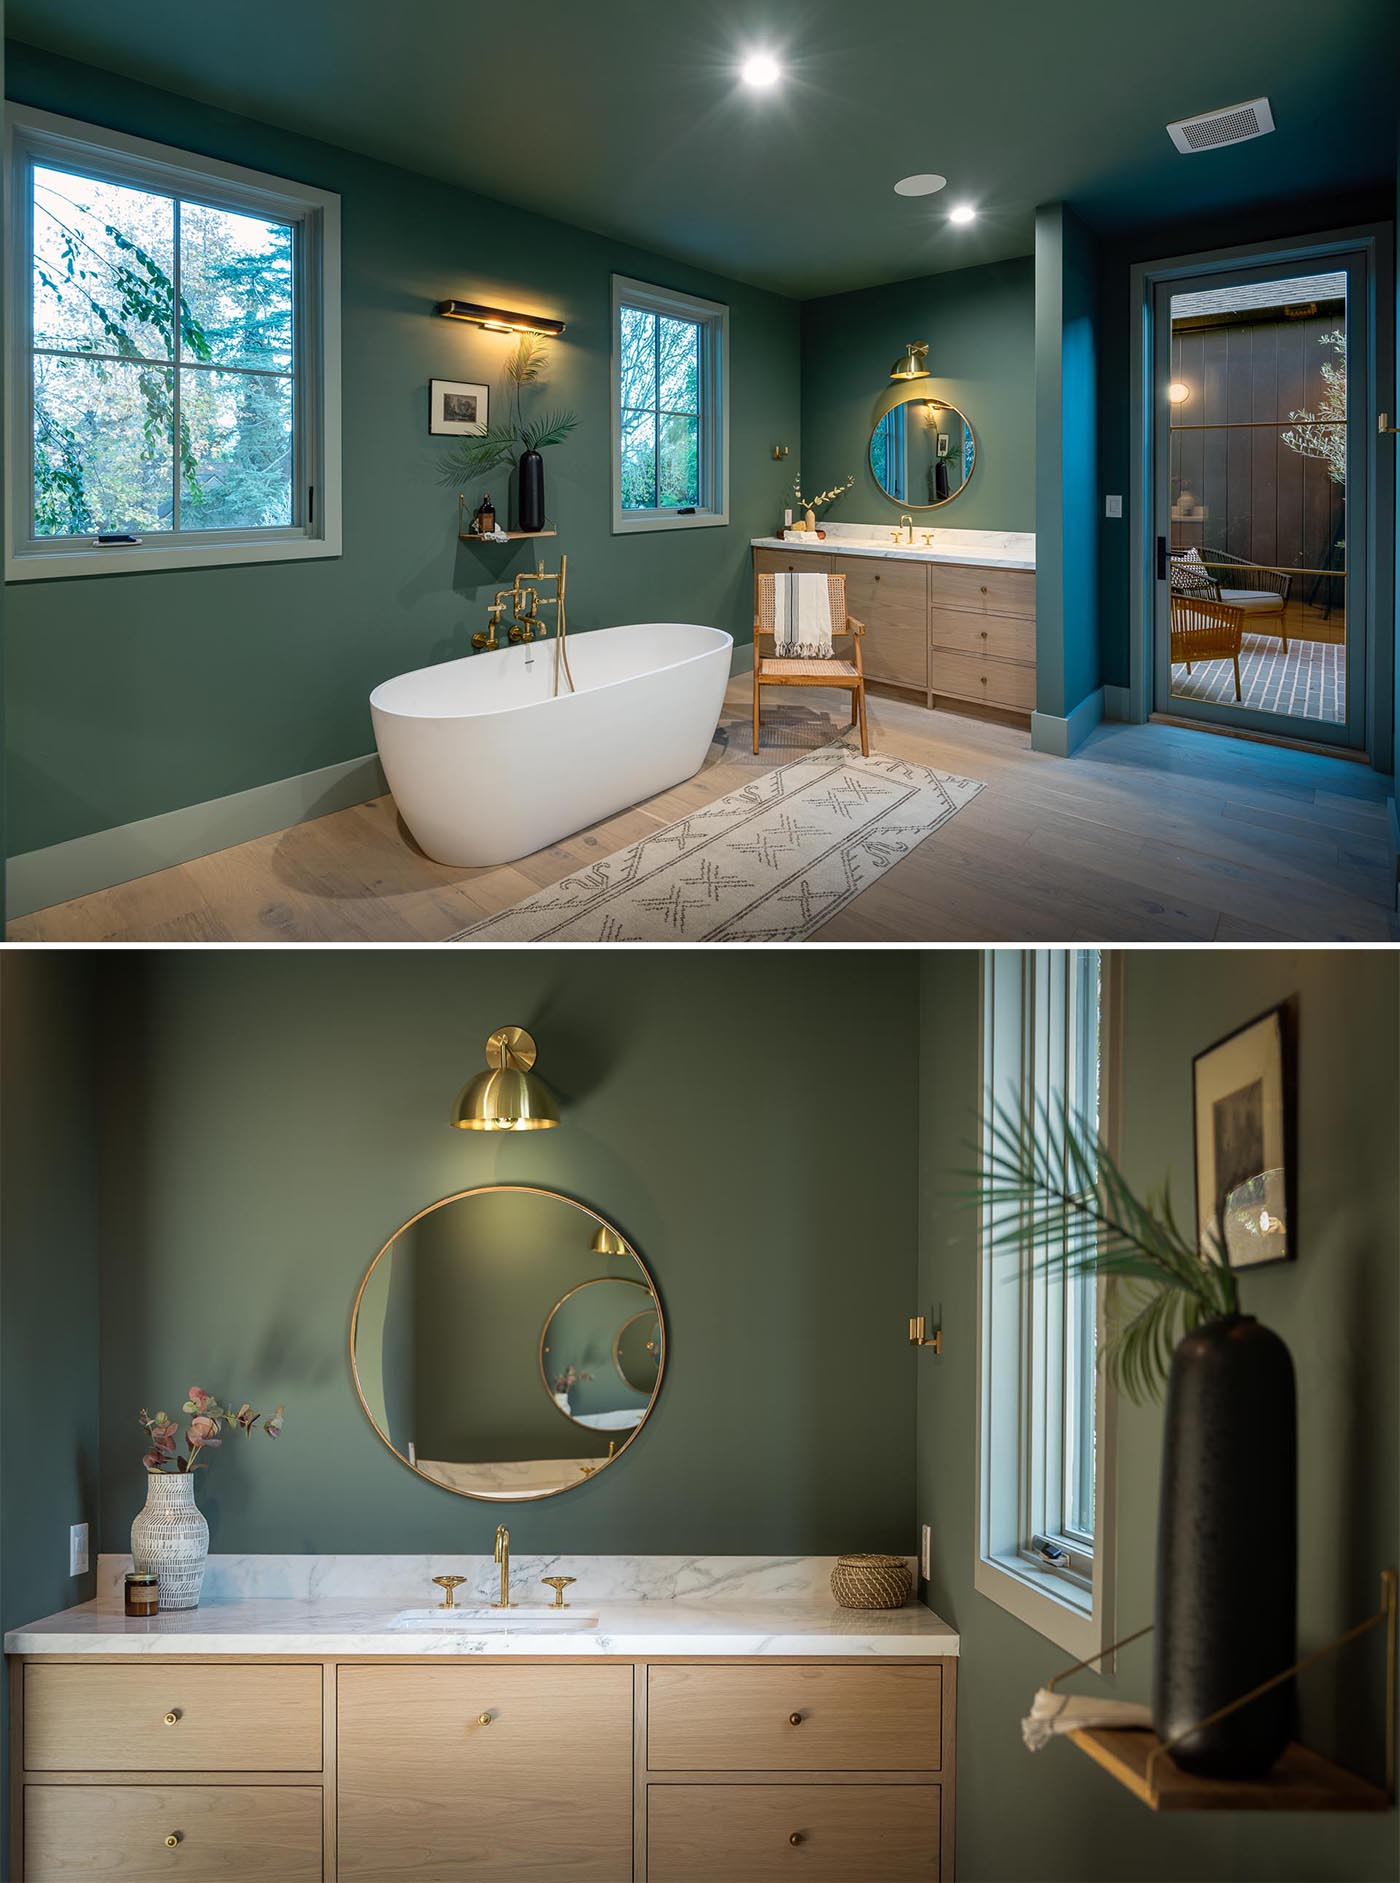 This modern bathroom showcases Elan Vital exposed aged brass plumbing, a freestanding bathtub, and honed marble counters topping the wood vanities.